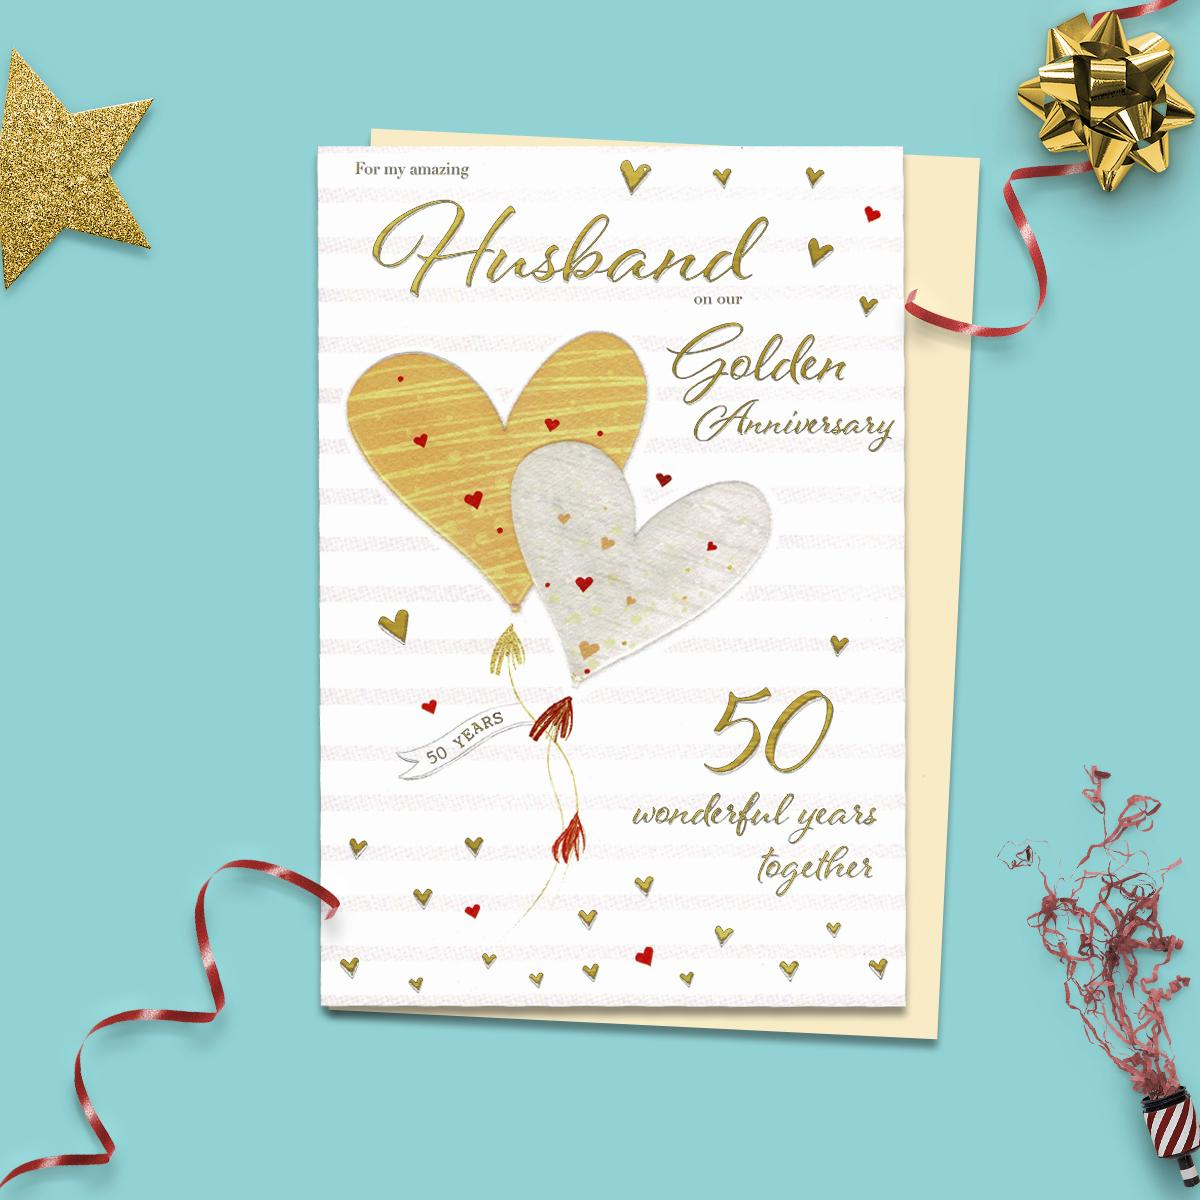 Husband Golden Anniversary Card Sat On A Display Shelf